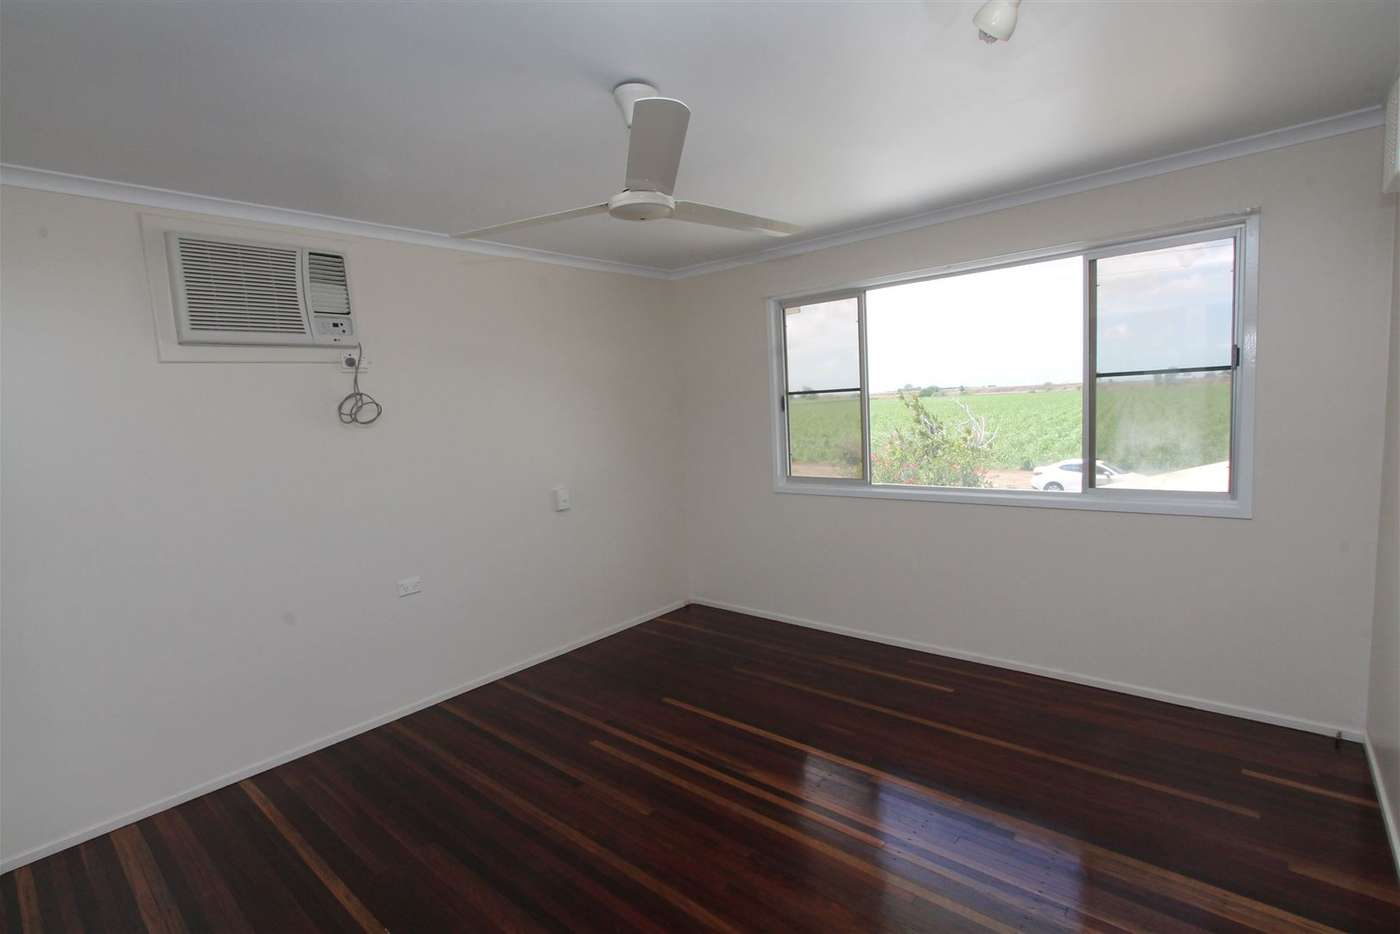 Sixth view of Homely house listing, 41 Stace Road, Ayr QLD 4807